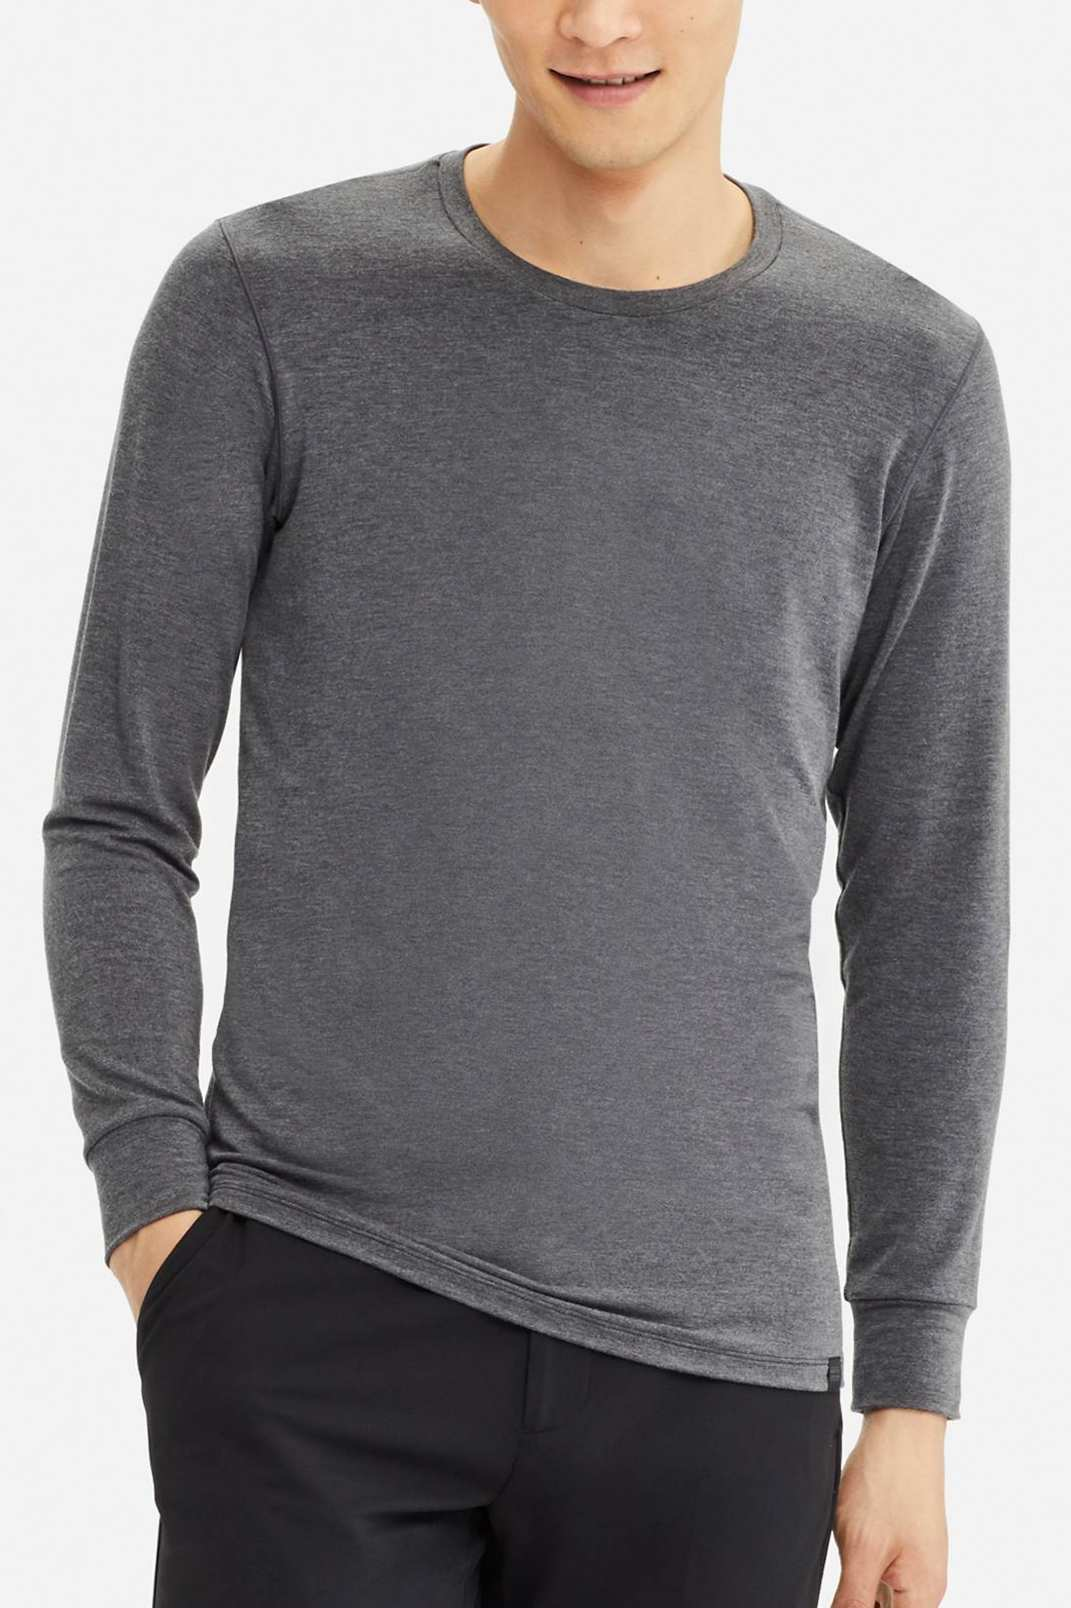 Uniqlo Men's Heattech Extra Warm Crew Neck Long-Sleeve T-shirt